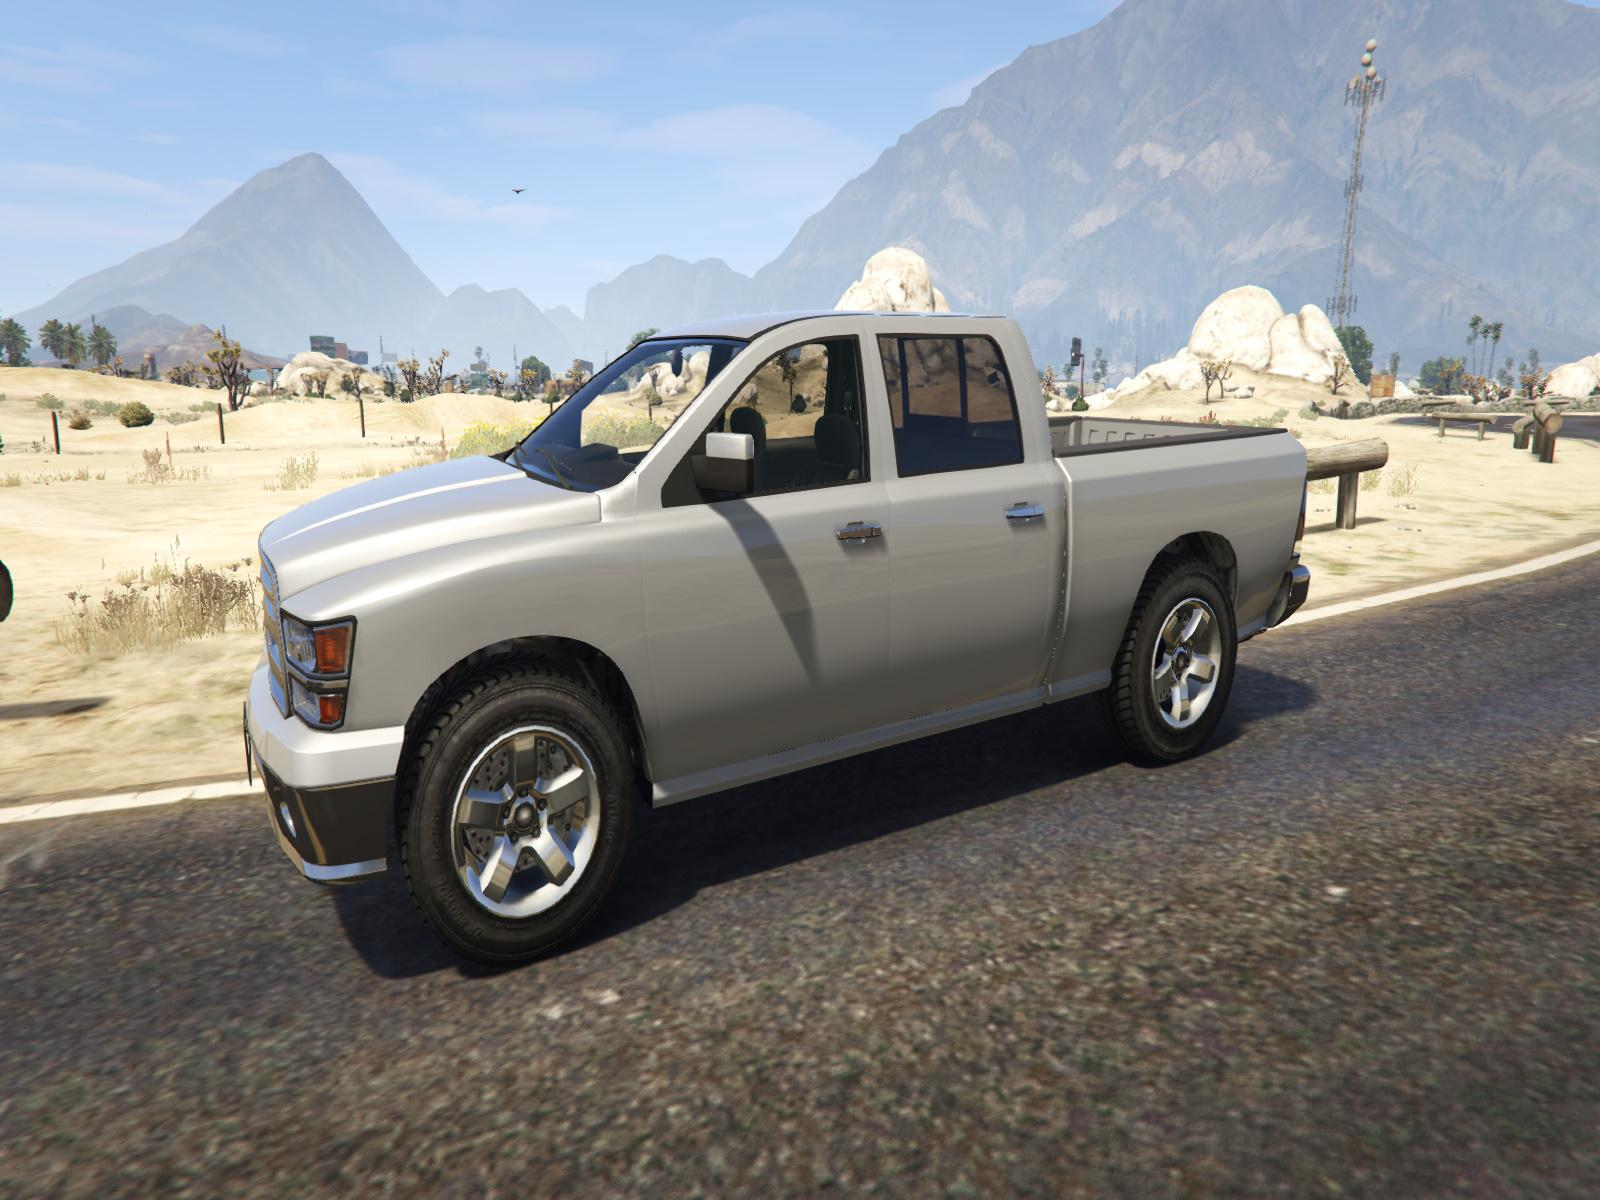 Bravado Bison Gta 5 Improved Bravado Bison...